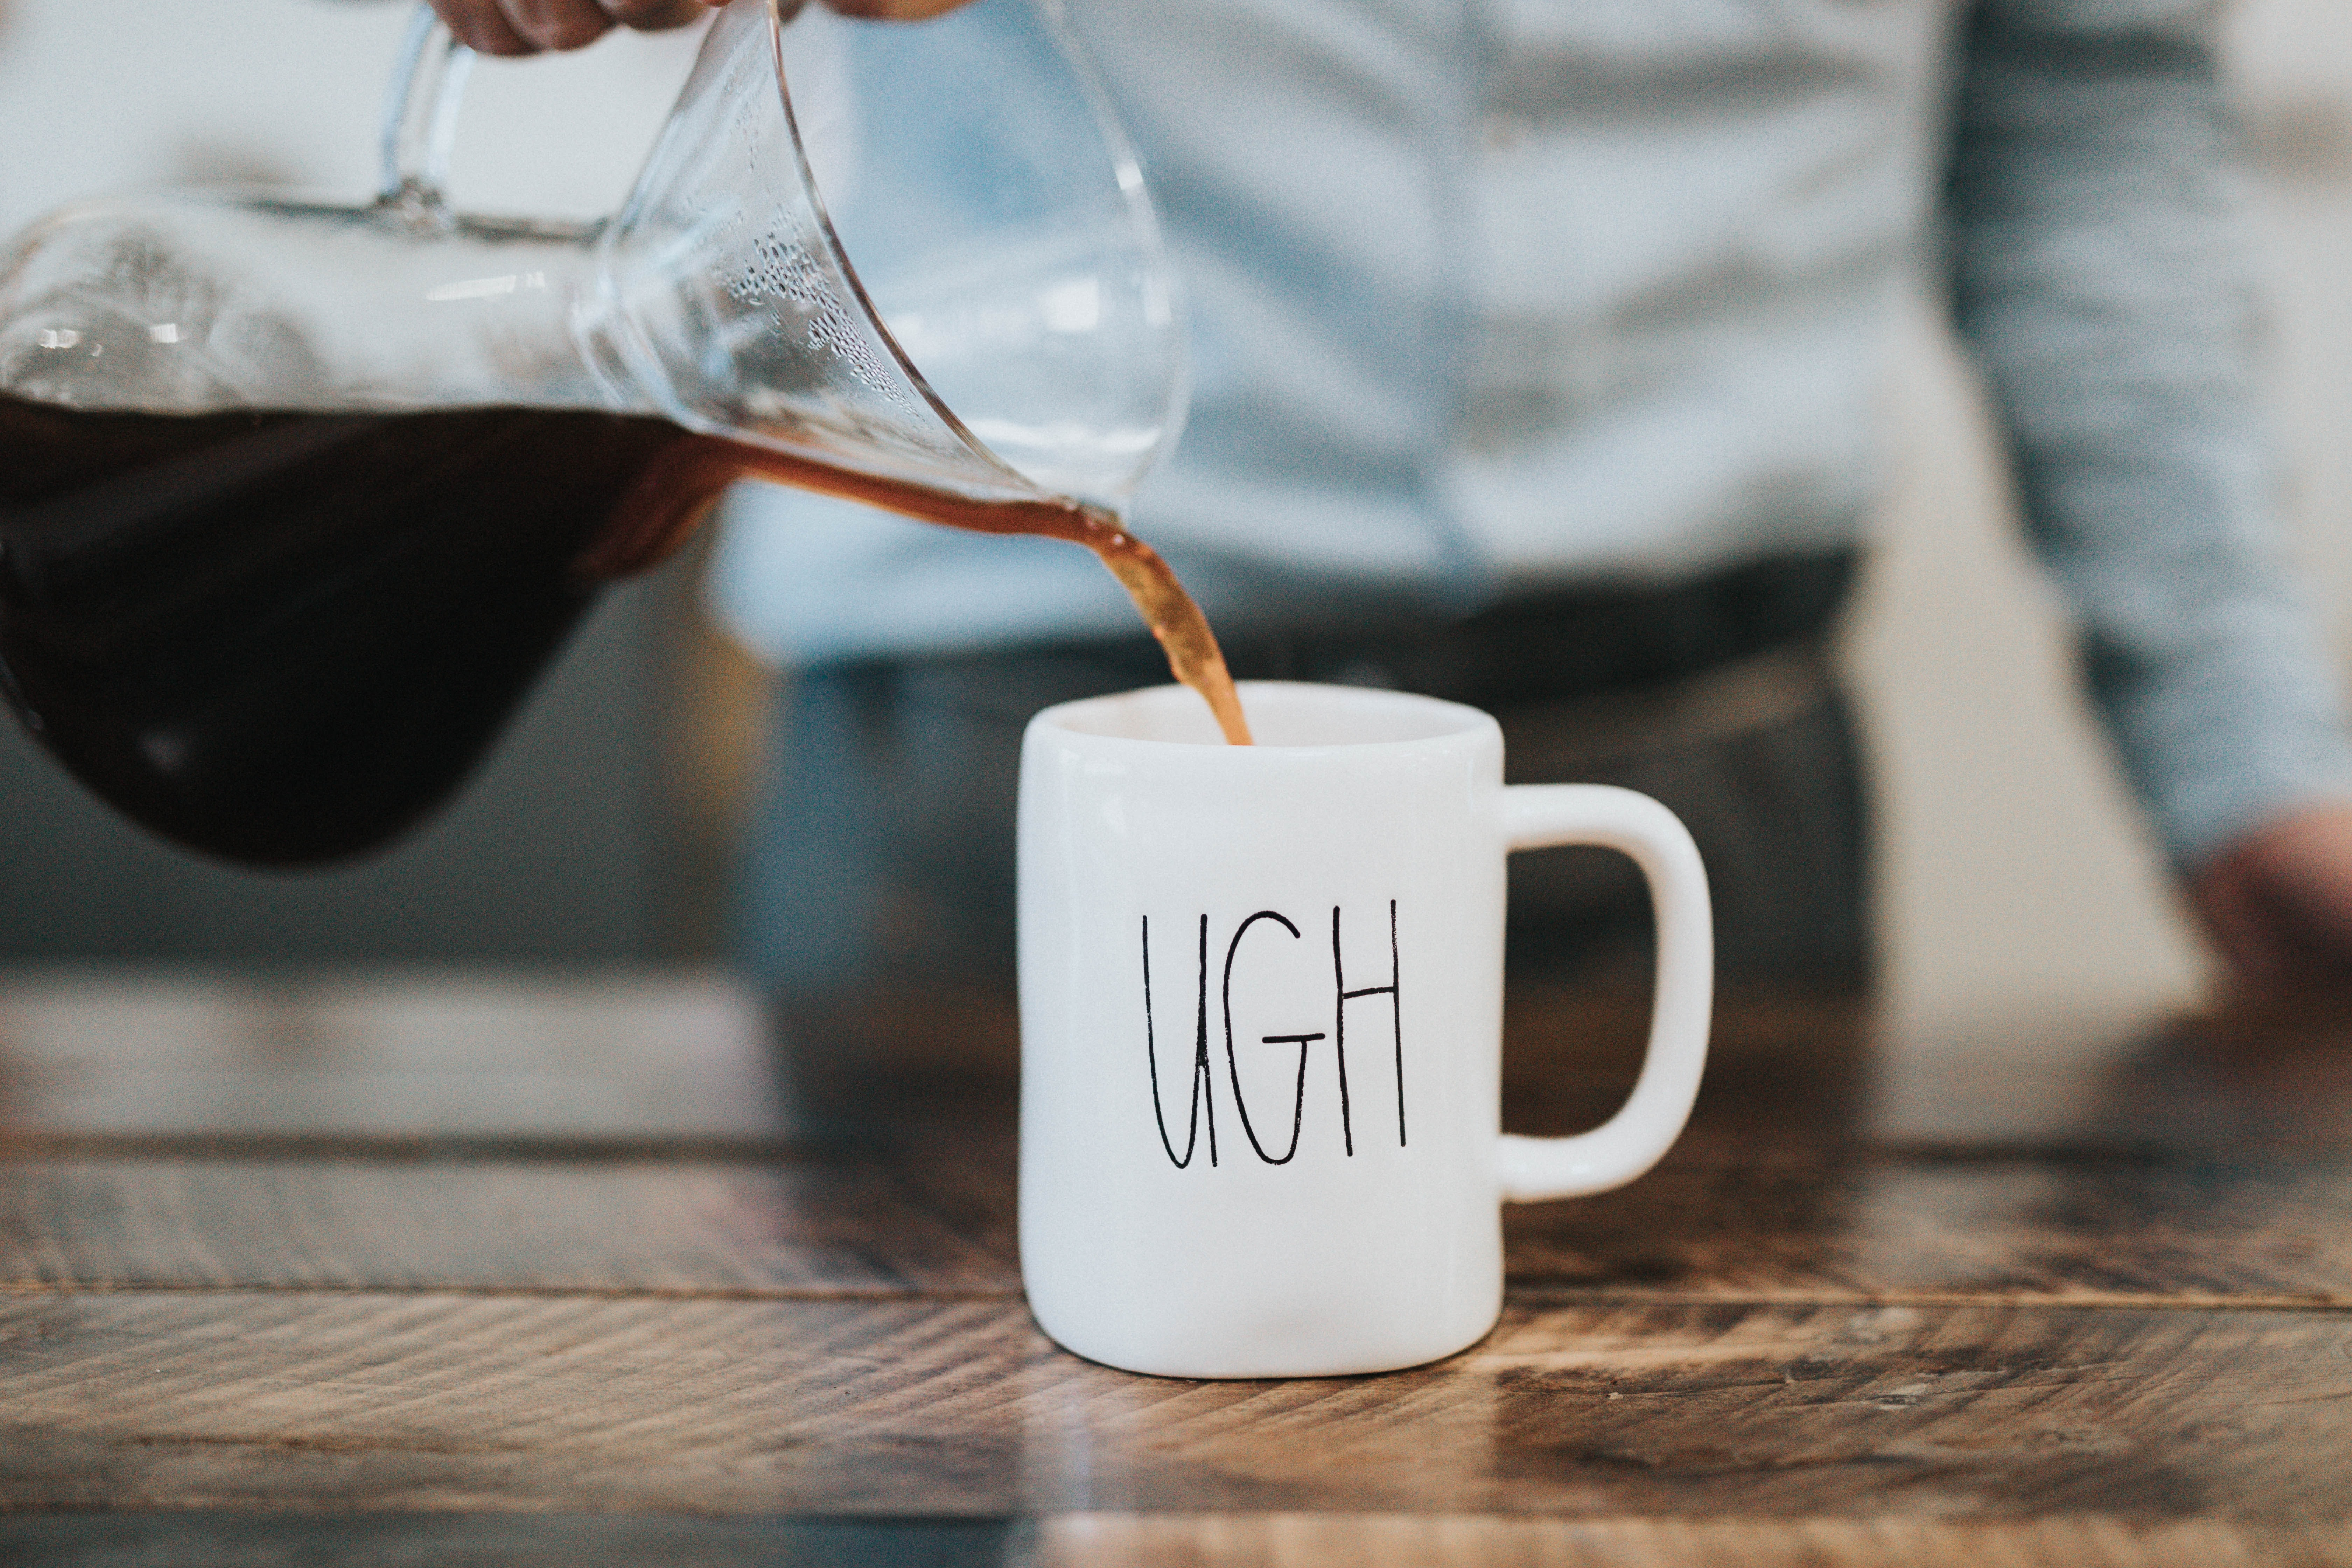 A barista pouring coffee into a mug that says ugh on it at Bar Nine